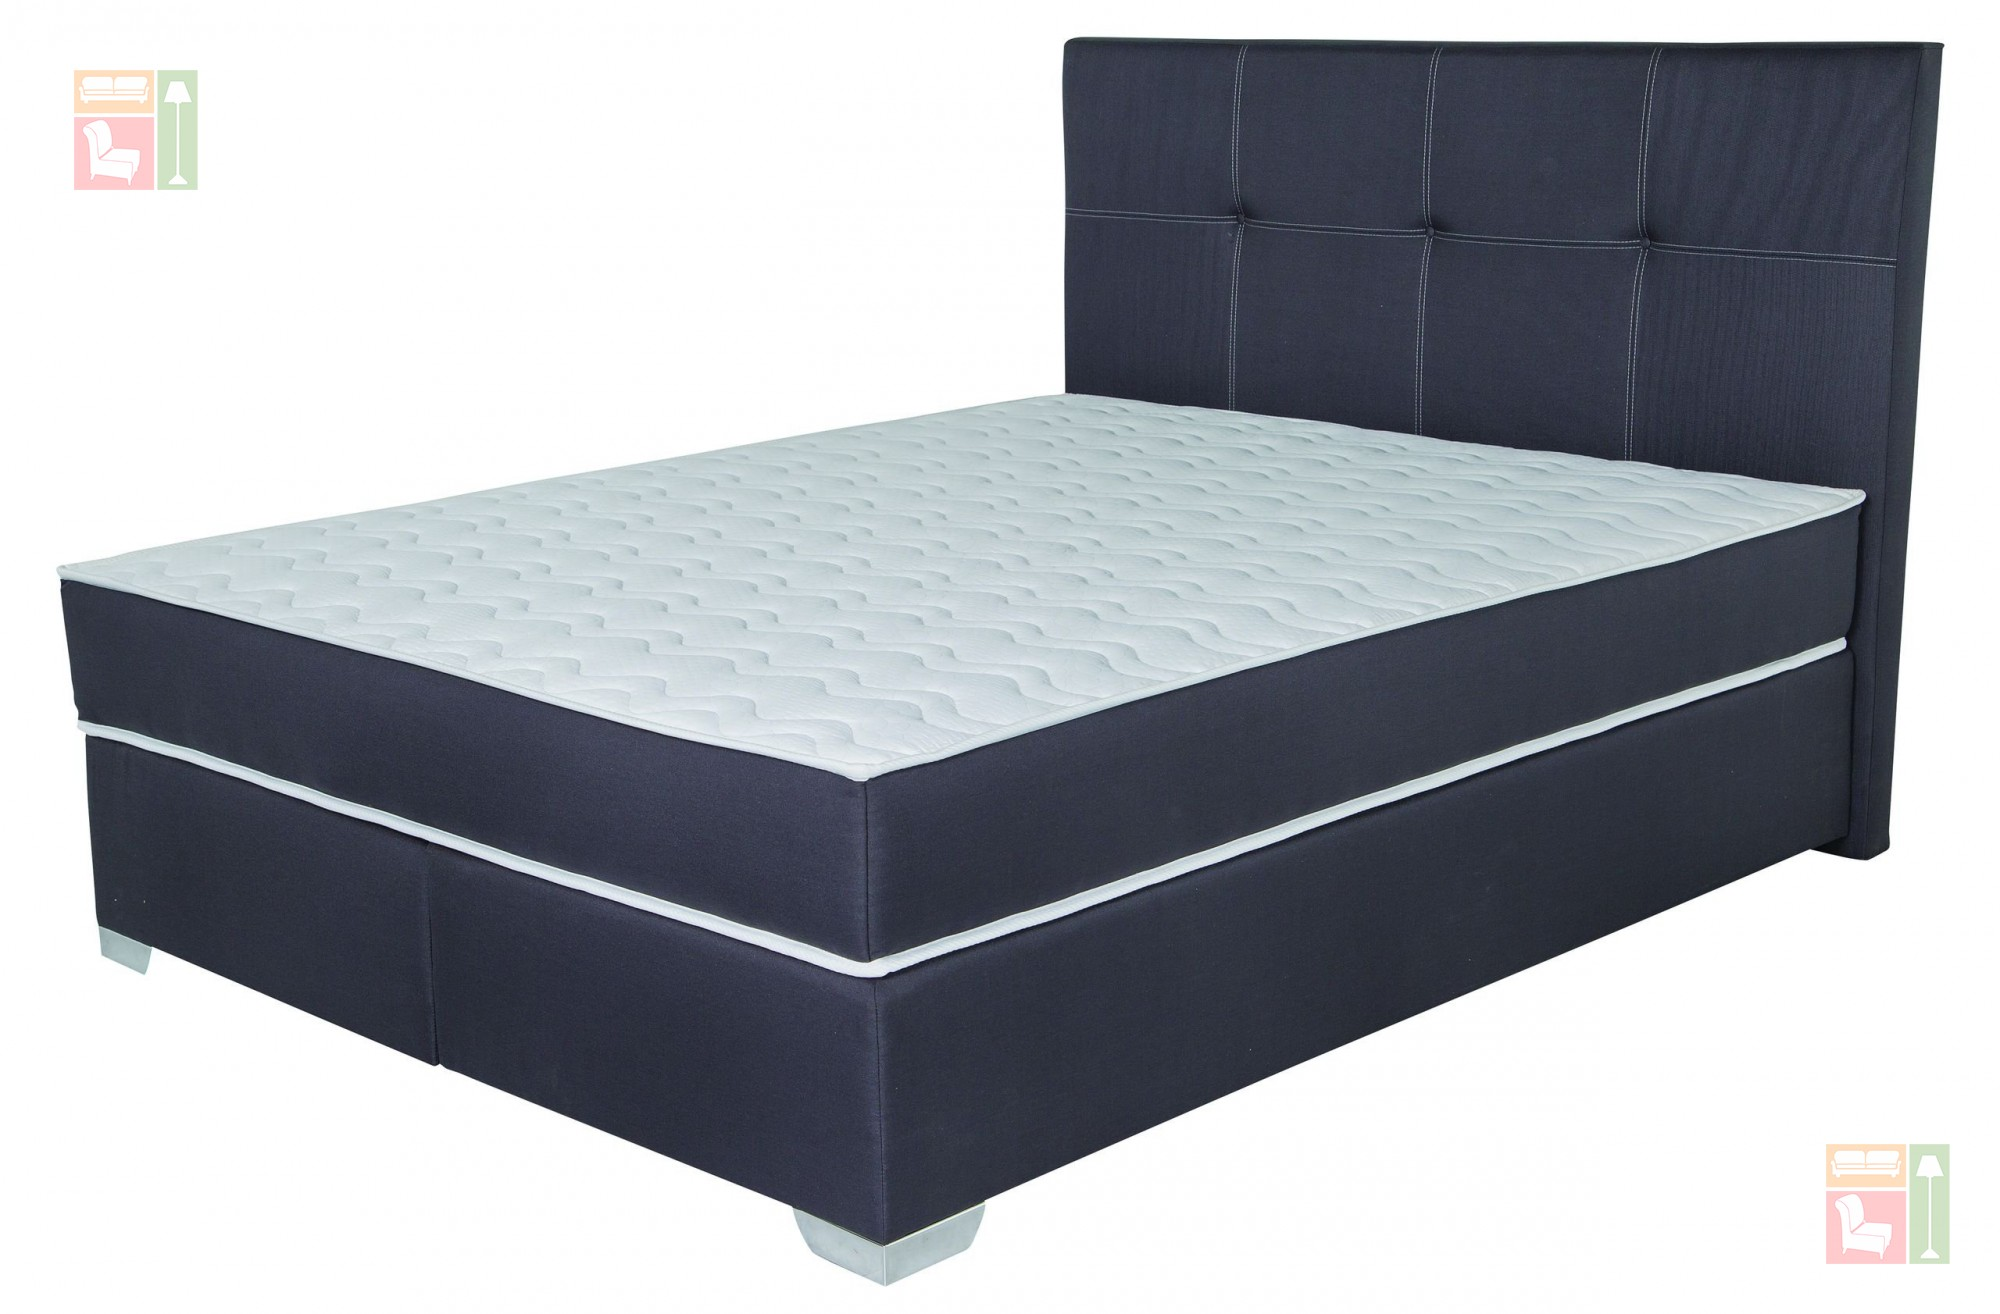 boxspring postelja monro 140x200 505 prodaja v sloveniji garancija dostava odli ne cene v. Black Bedroom Furniture Sets. Home Design Ideas